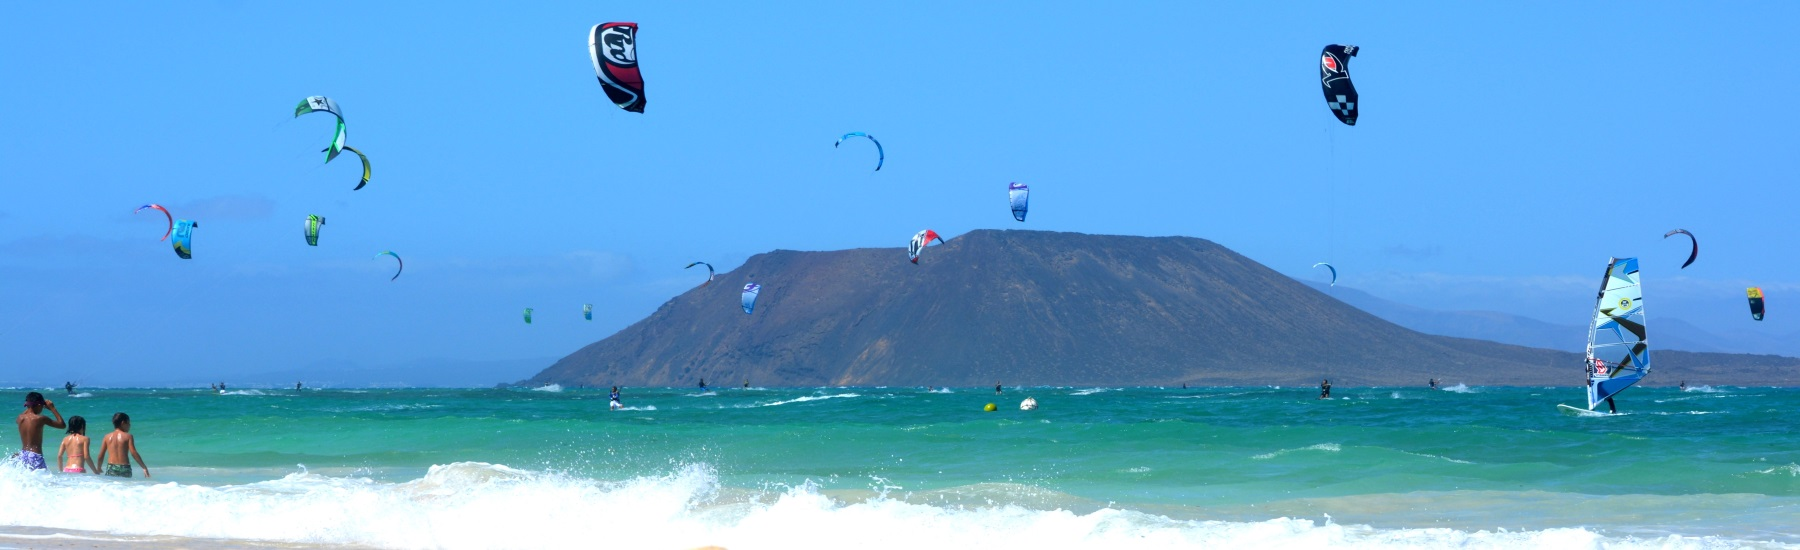 Wind Surfing und Kite Surfing in Fuerteventura